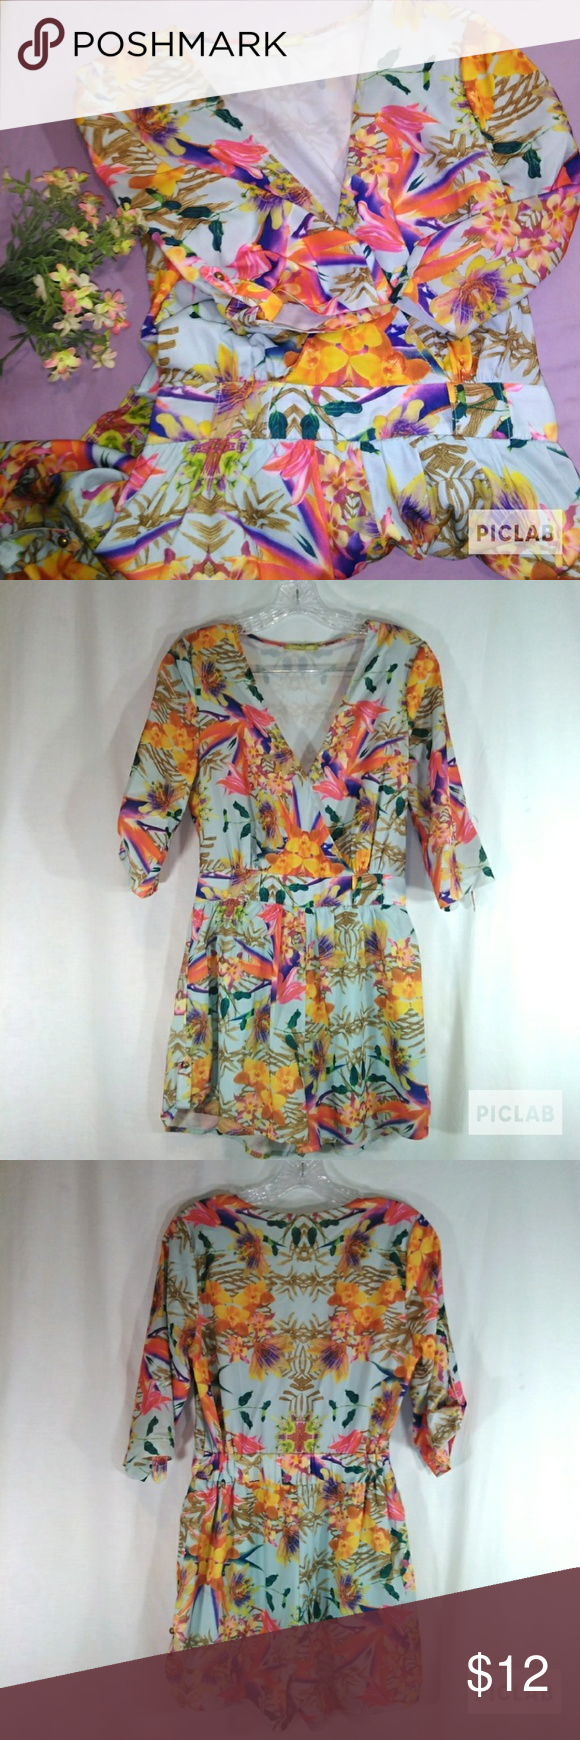 a196d94b768 Gianni Bini floral romper X-small Gianni Bini tropical floral romper. Size  extra small. 1 2 sleeve. Missing button